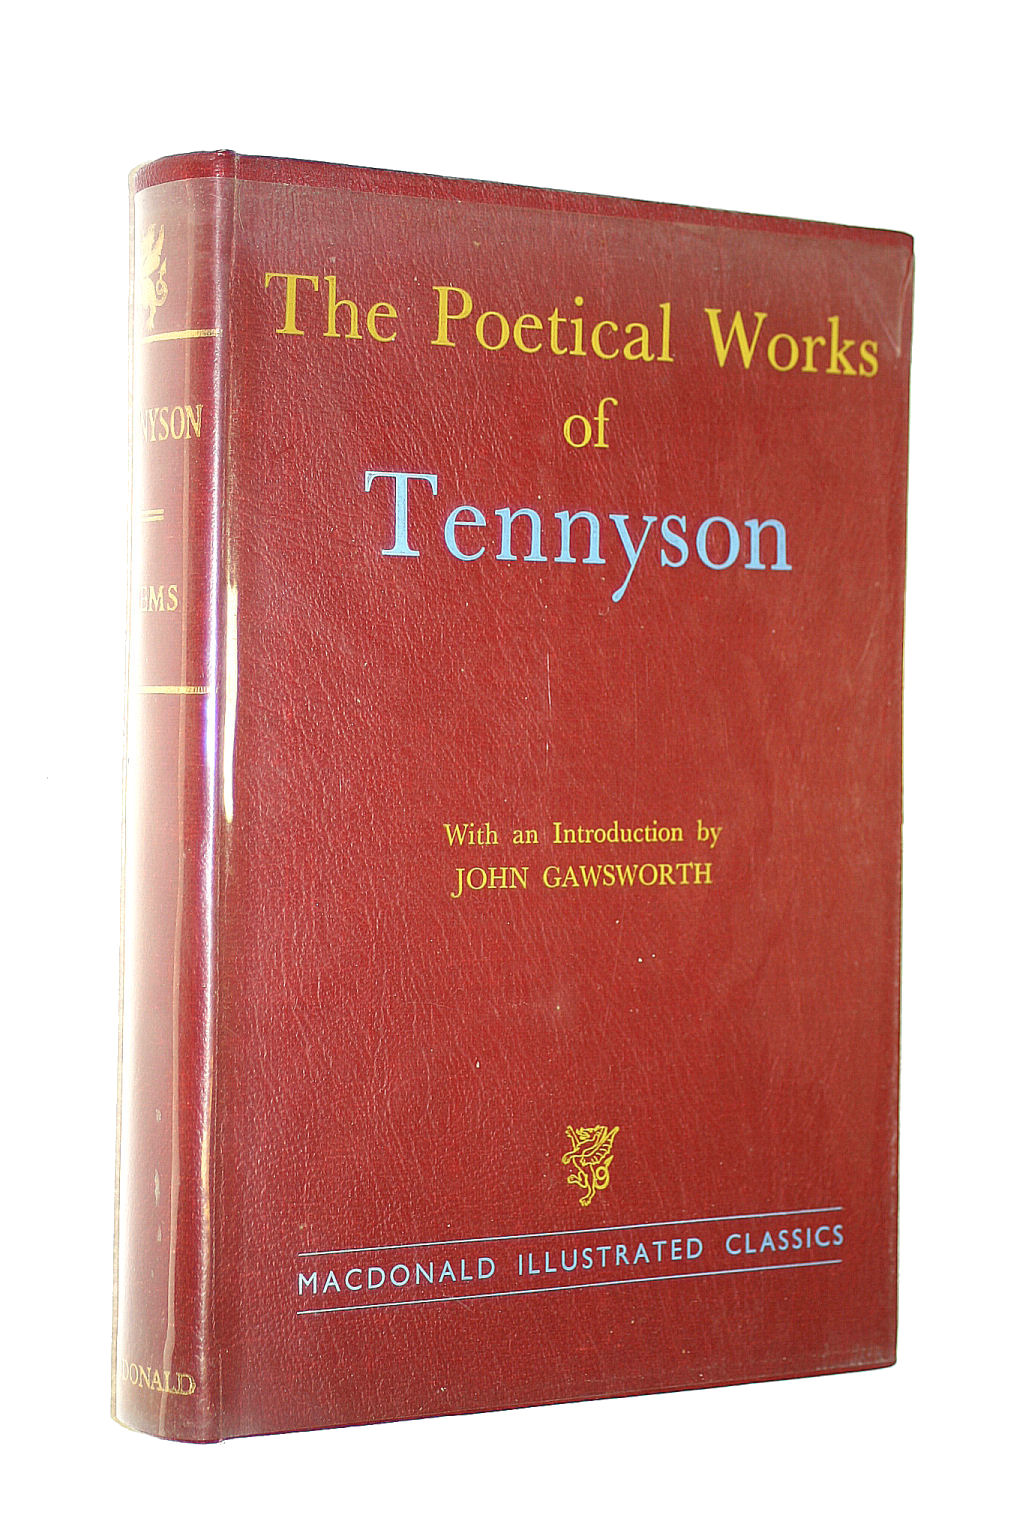 Image for The Poetical Works Of Tennyson (Macdonald Illustrated Classics Series; No.19)